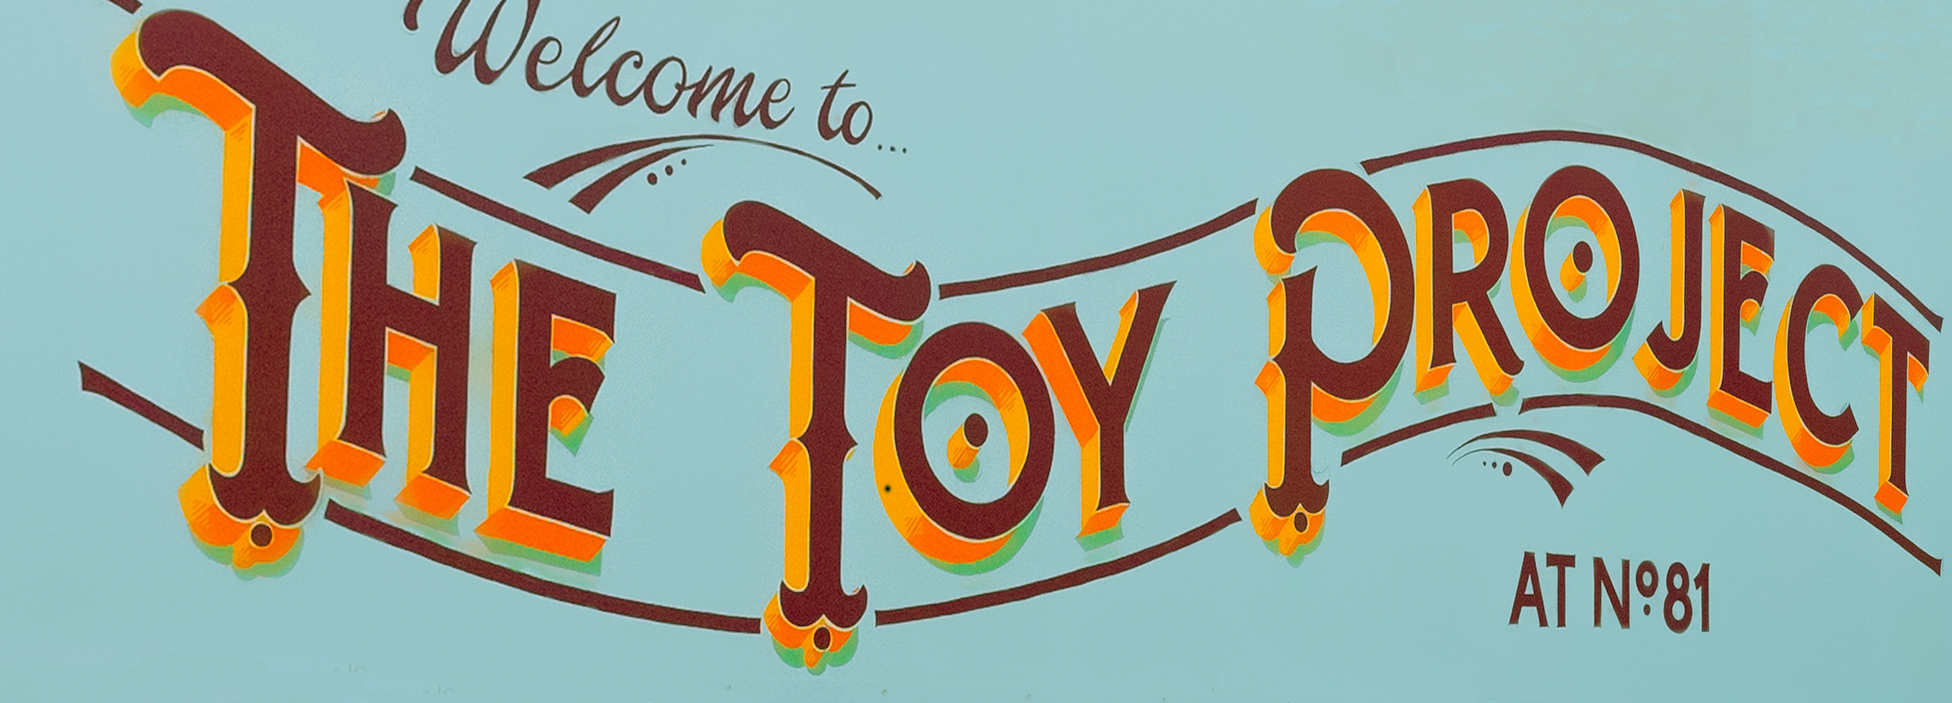 The Toy Project - Homepage